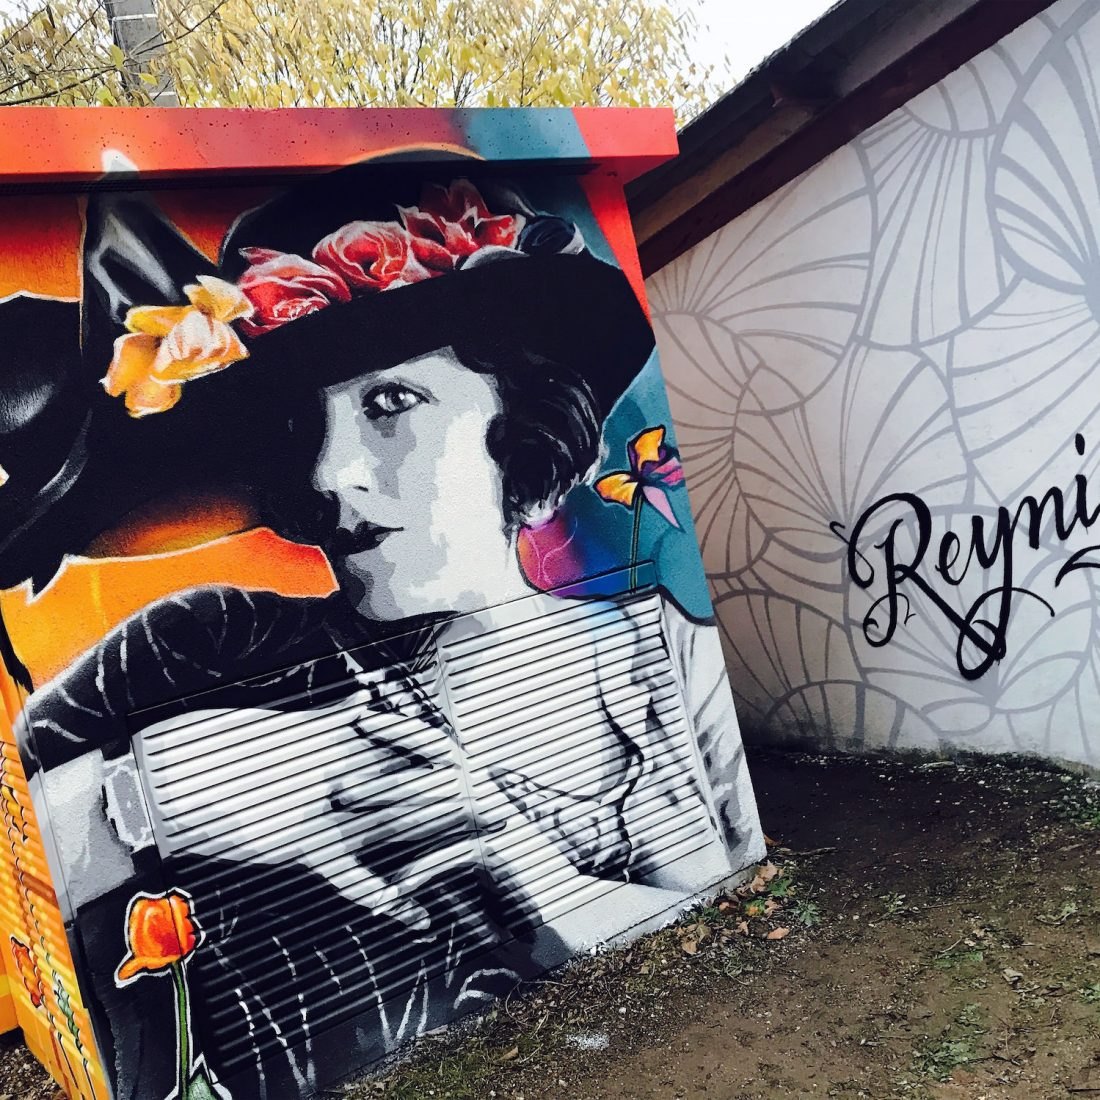 graffiti transformateur reynies